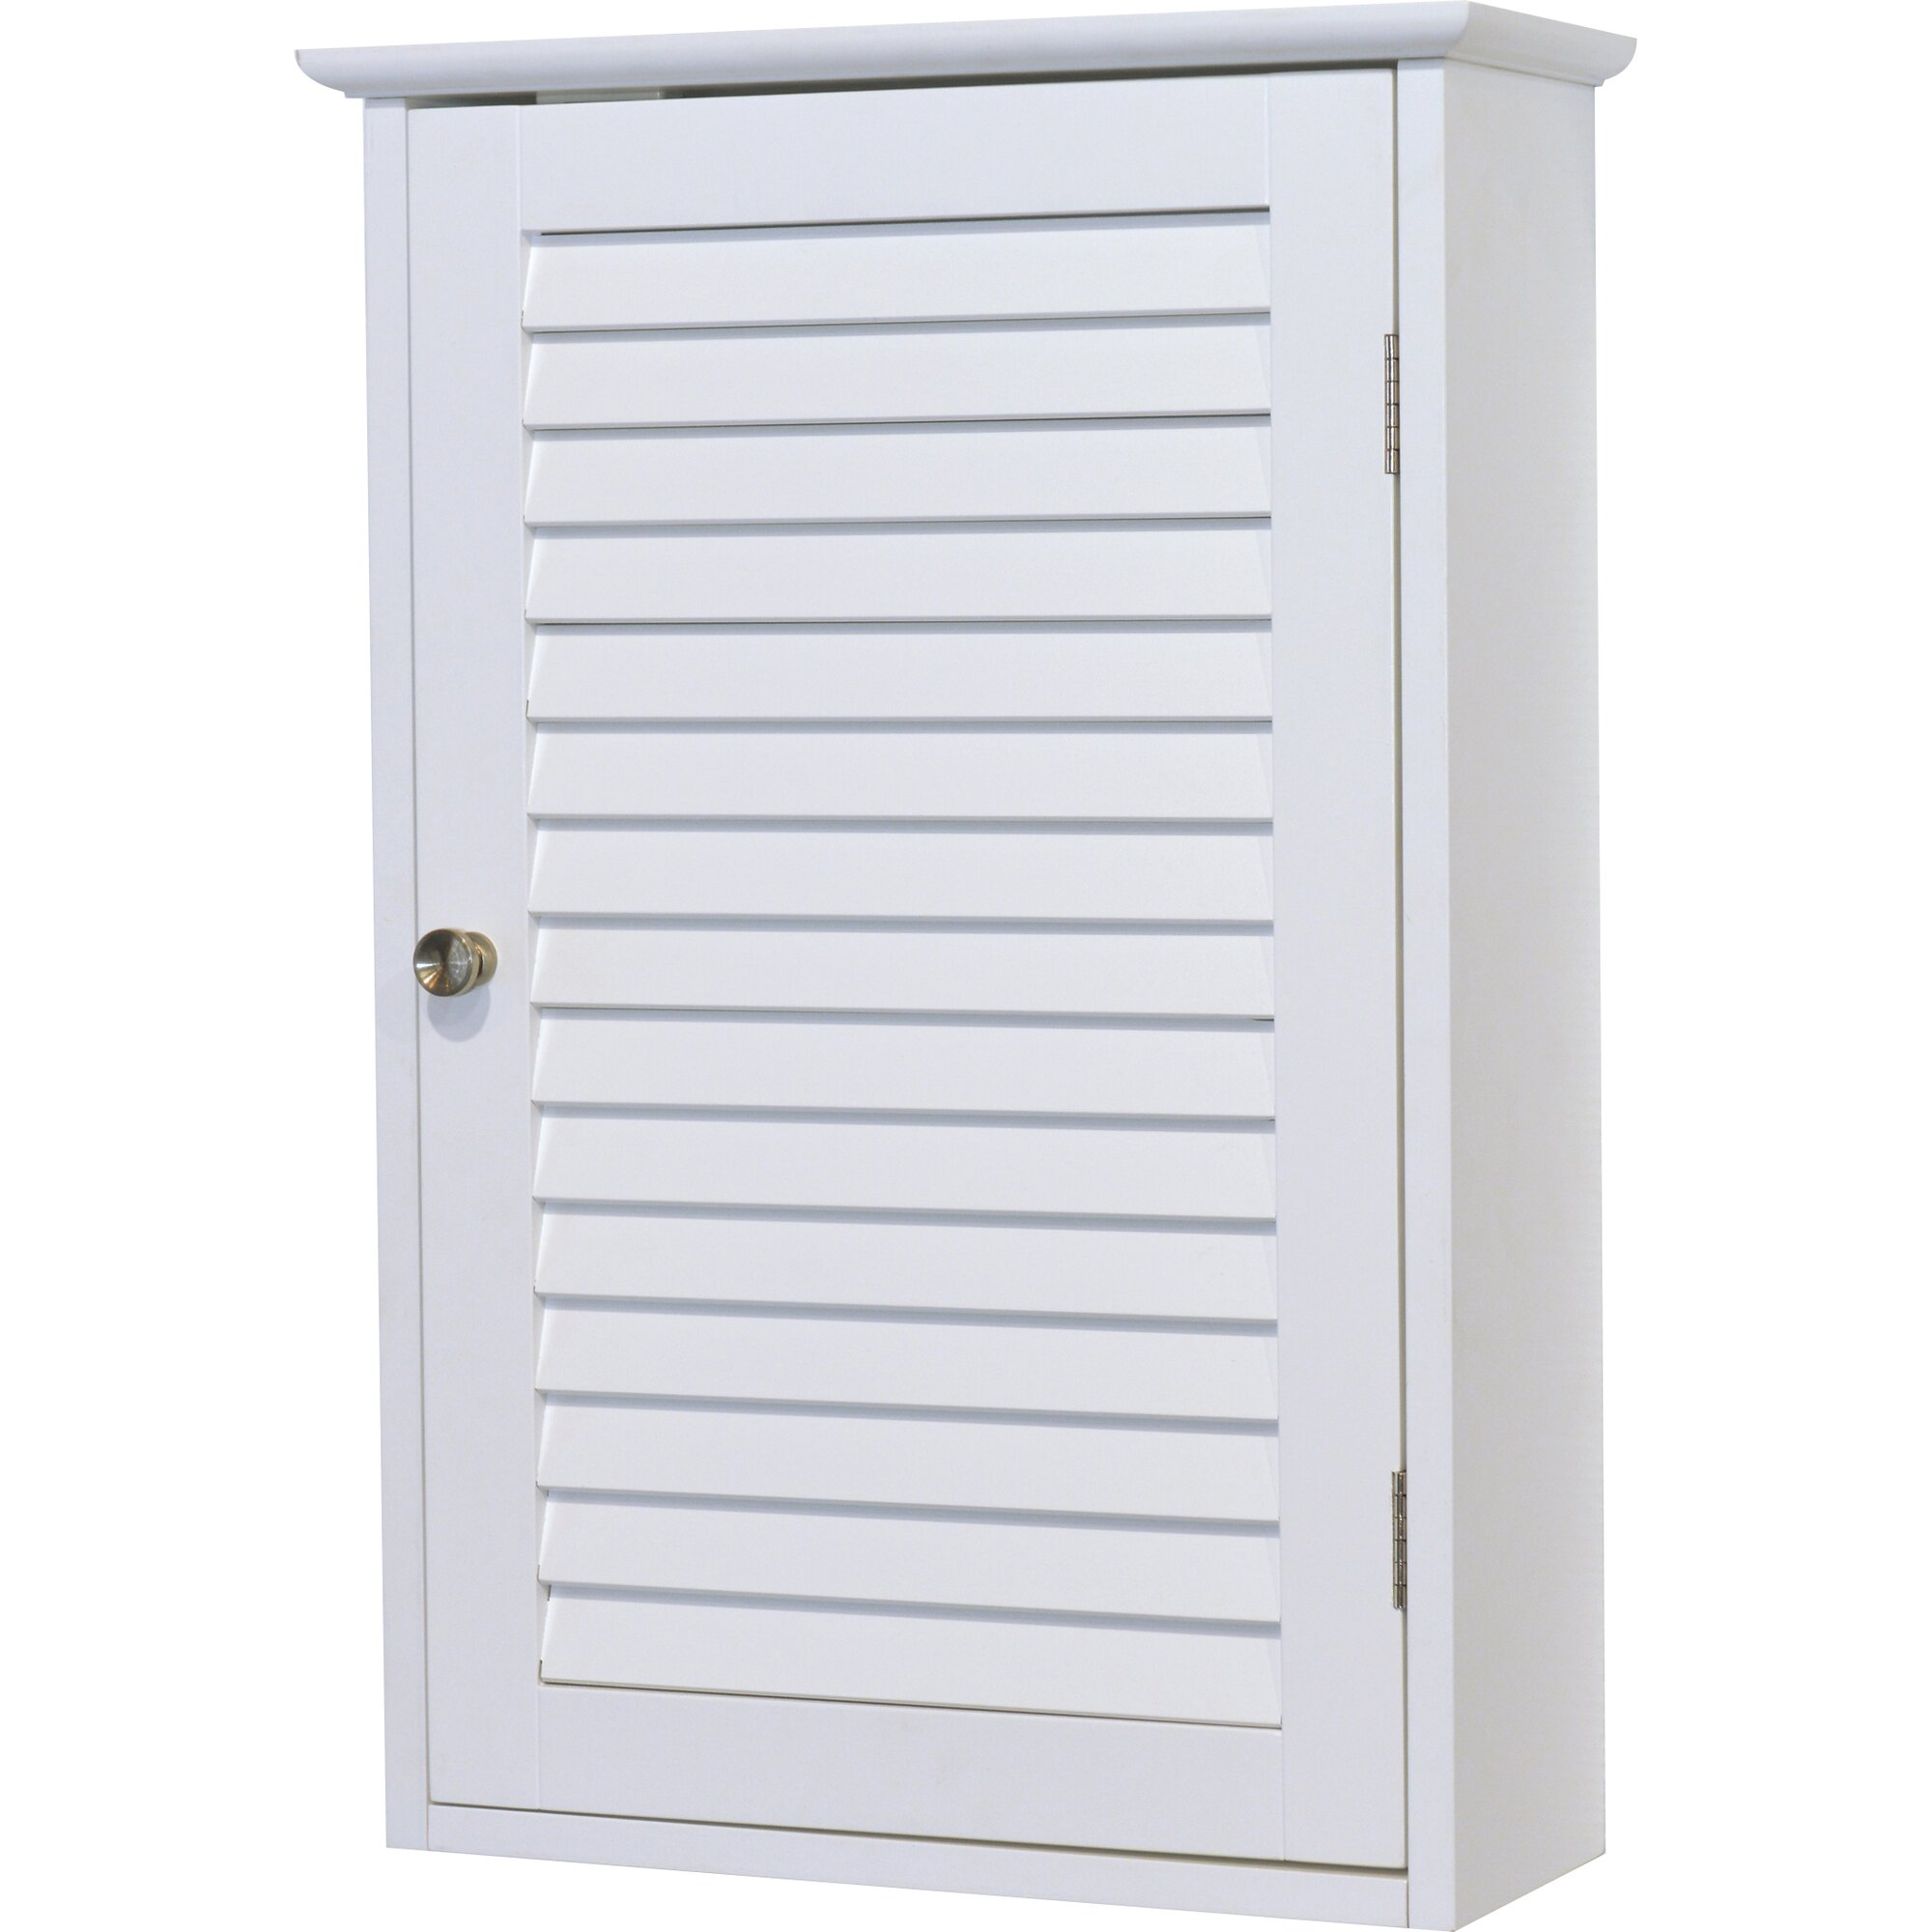 Evideco florence 15 7 w x 24 2 h wall mounted cabinet for Armoire murale cuisine